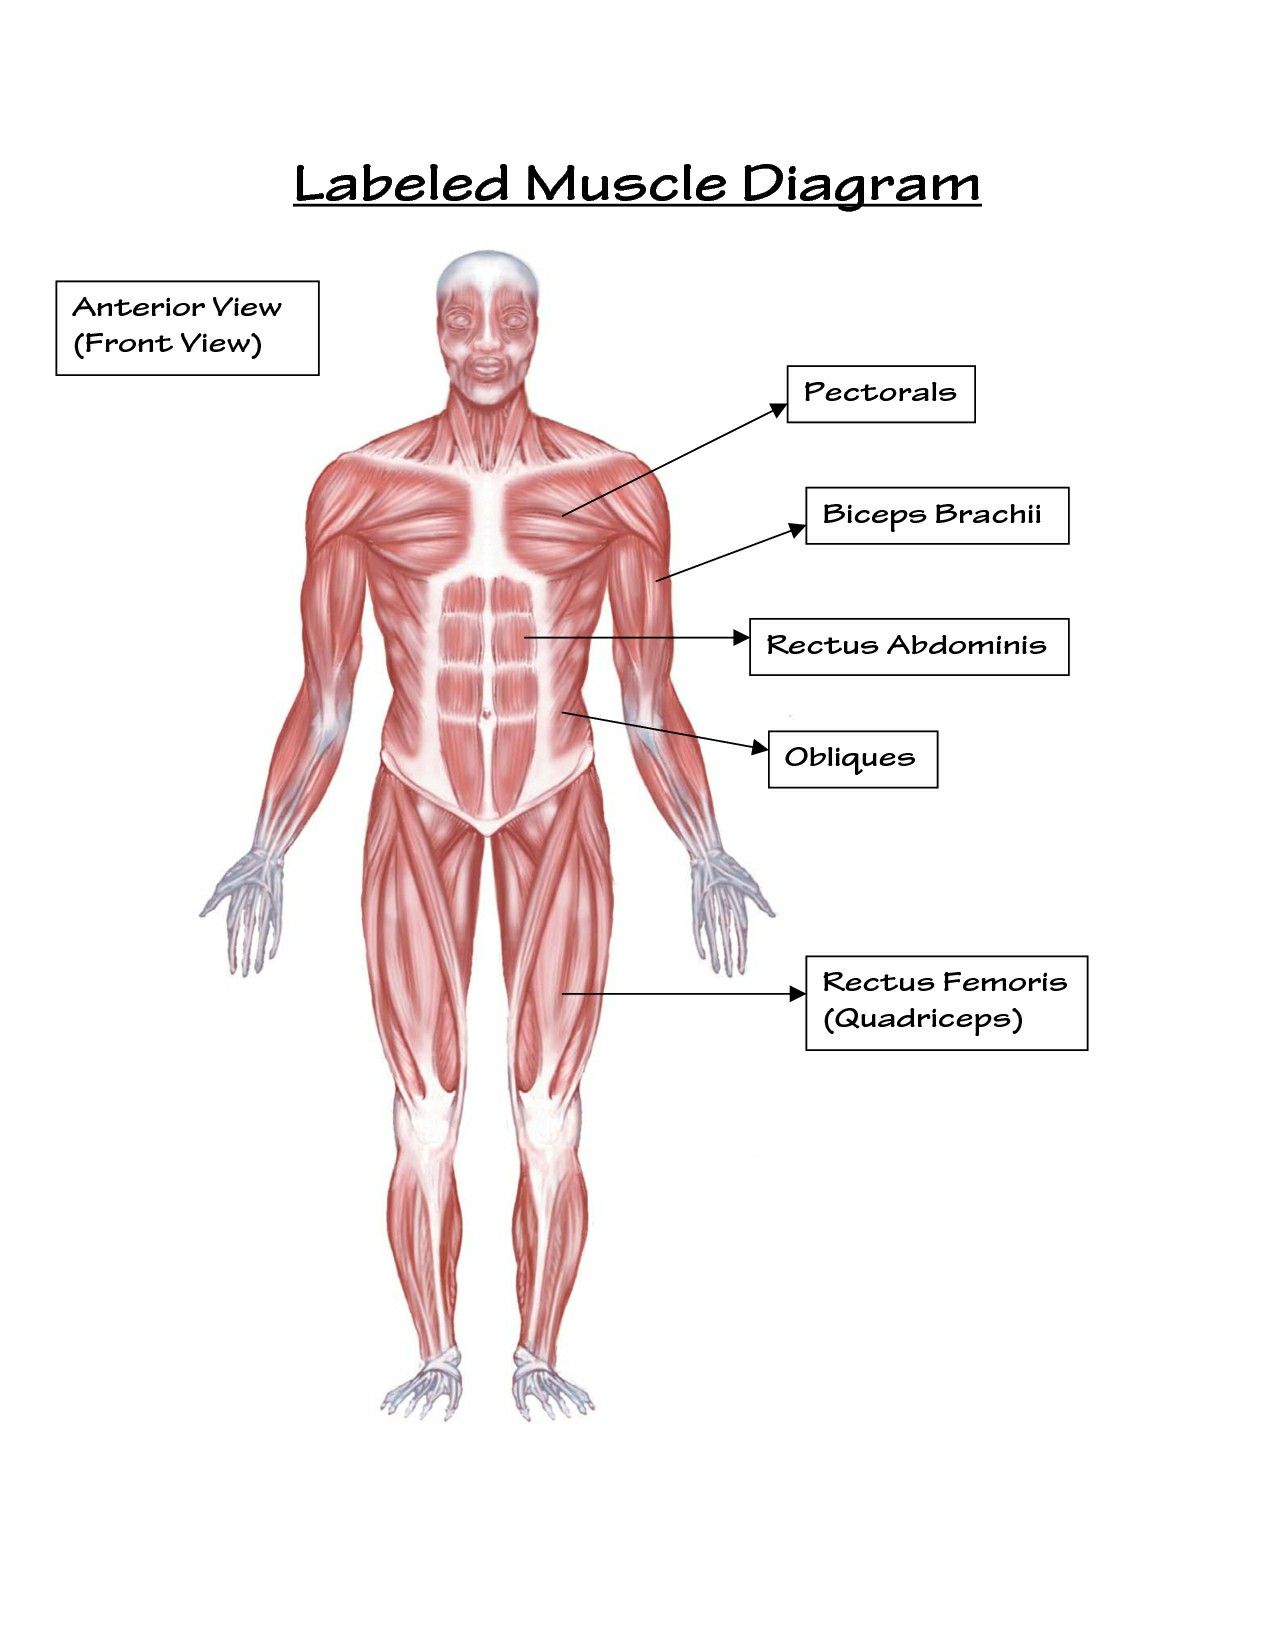 Labeled Body Muscle Diagram Simple Labeled Muscle Diagram